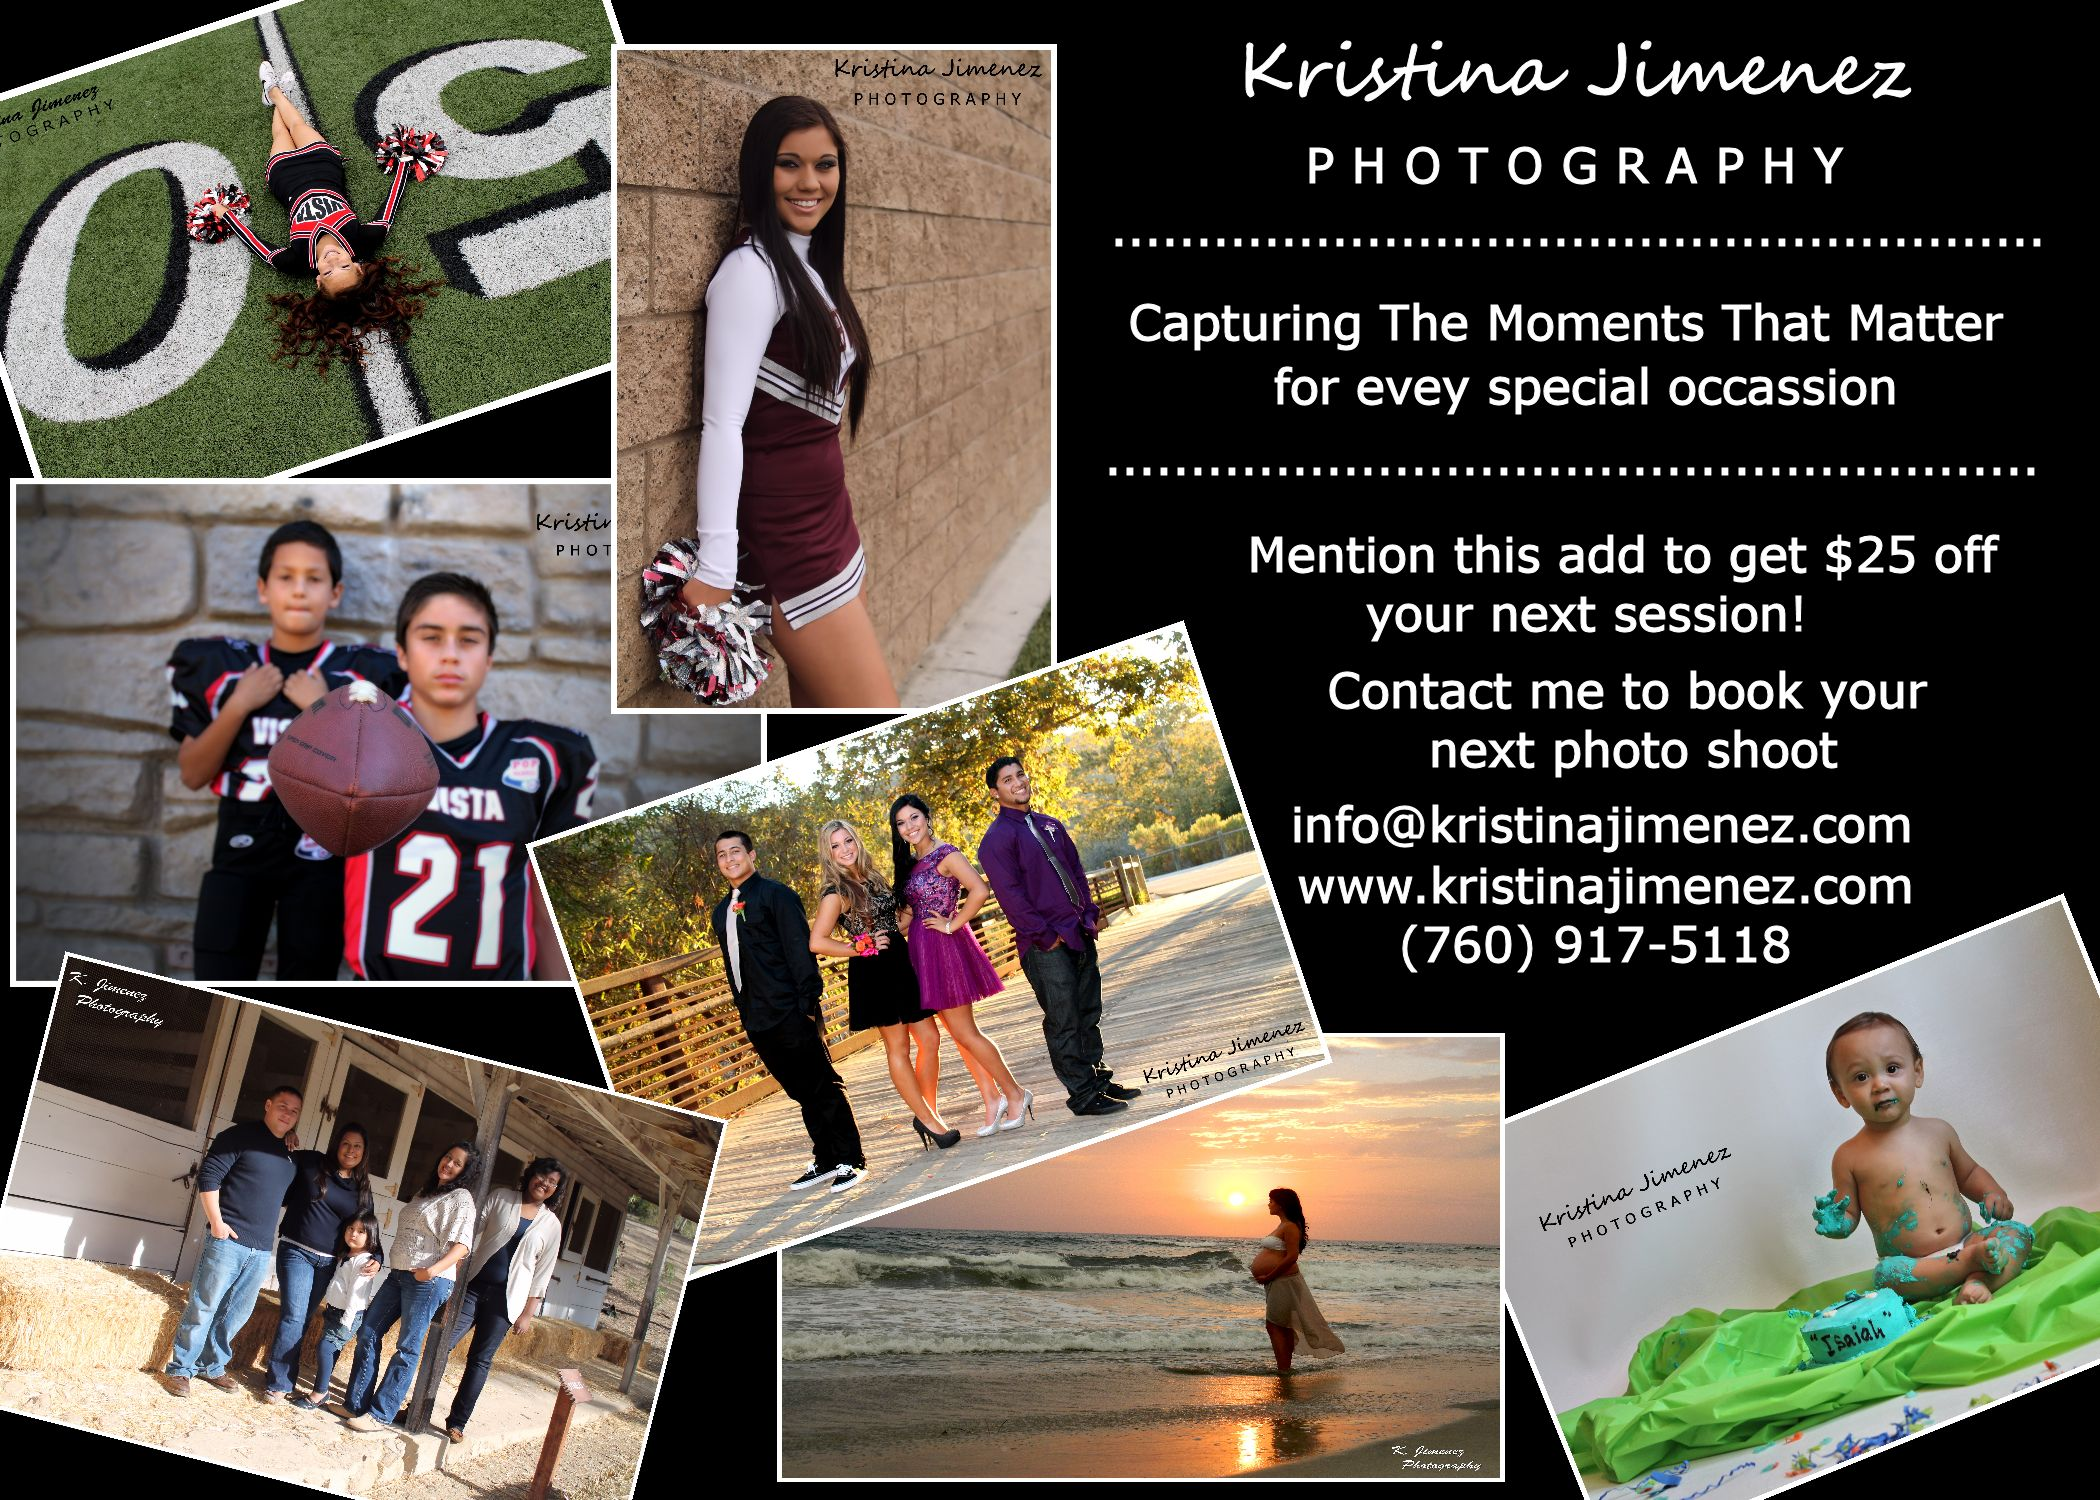 Done.Kristina-Jimenez-Photography-Flyers-1